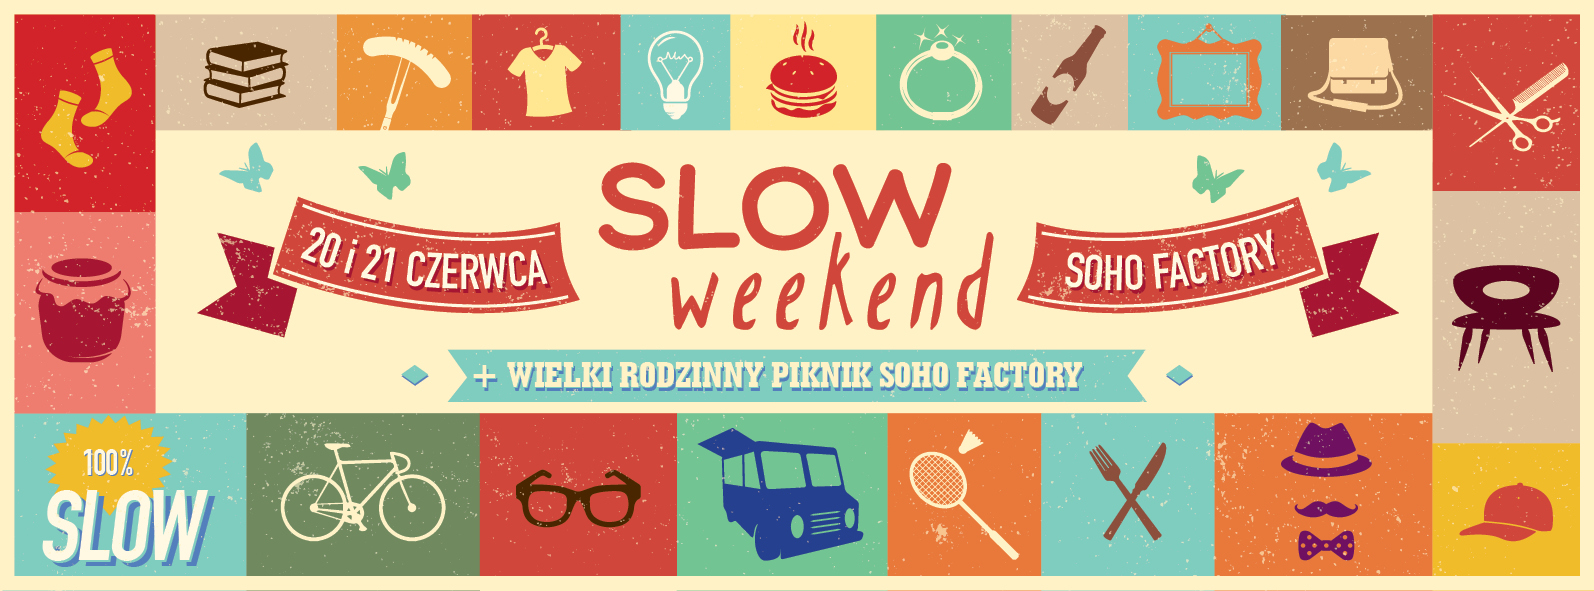 SLOW WEEKEND - cover poster facebook